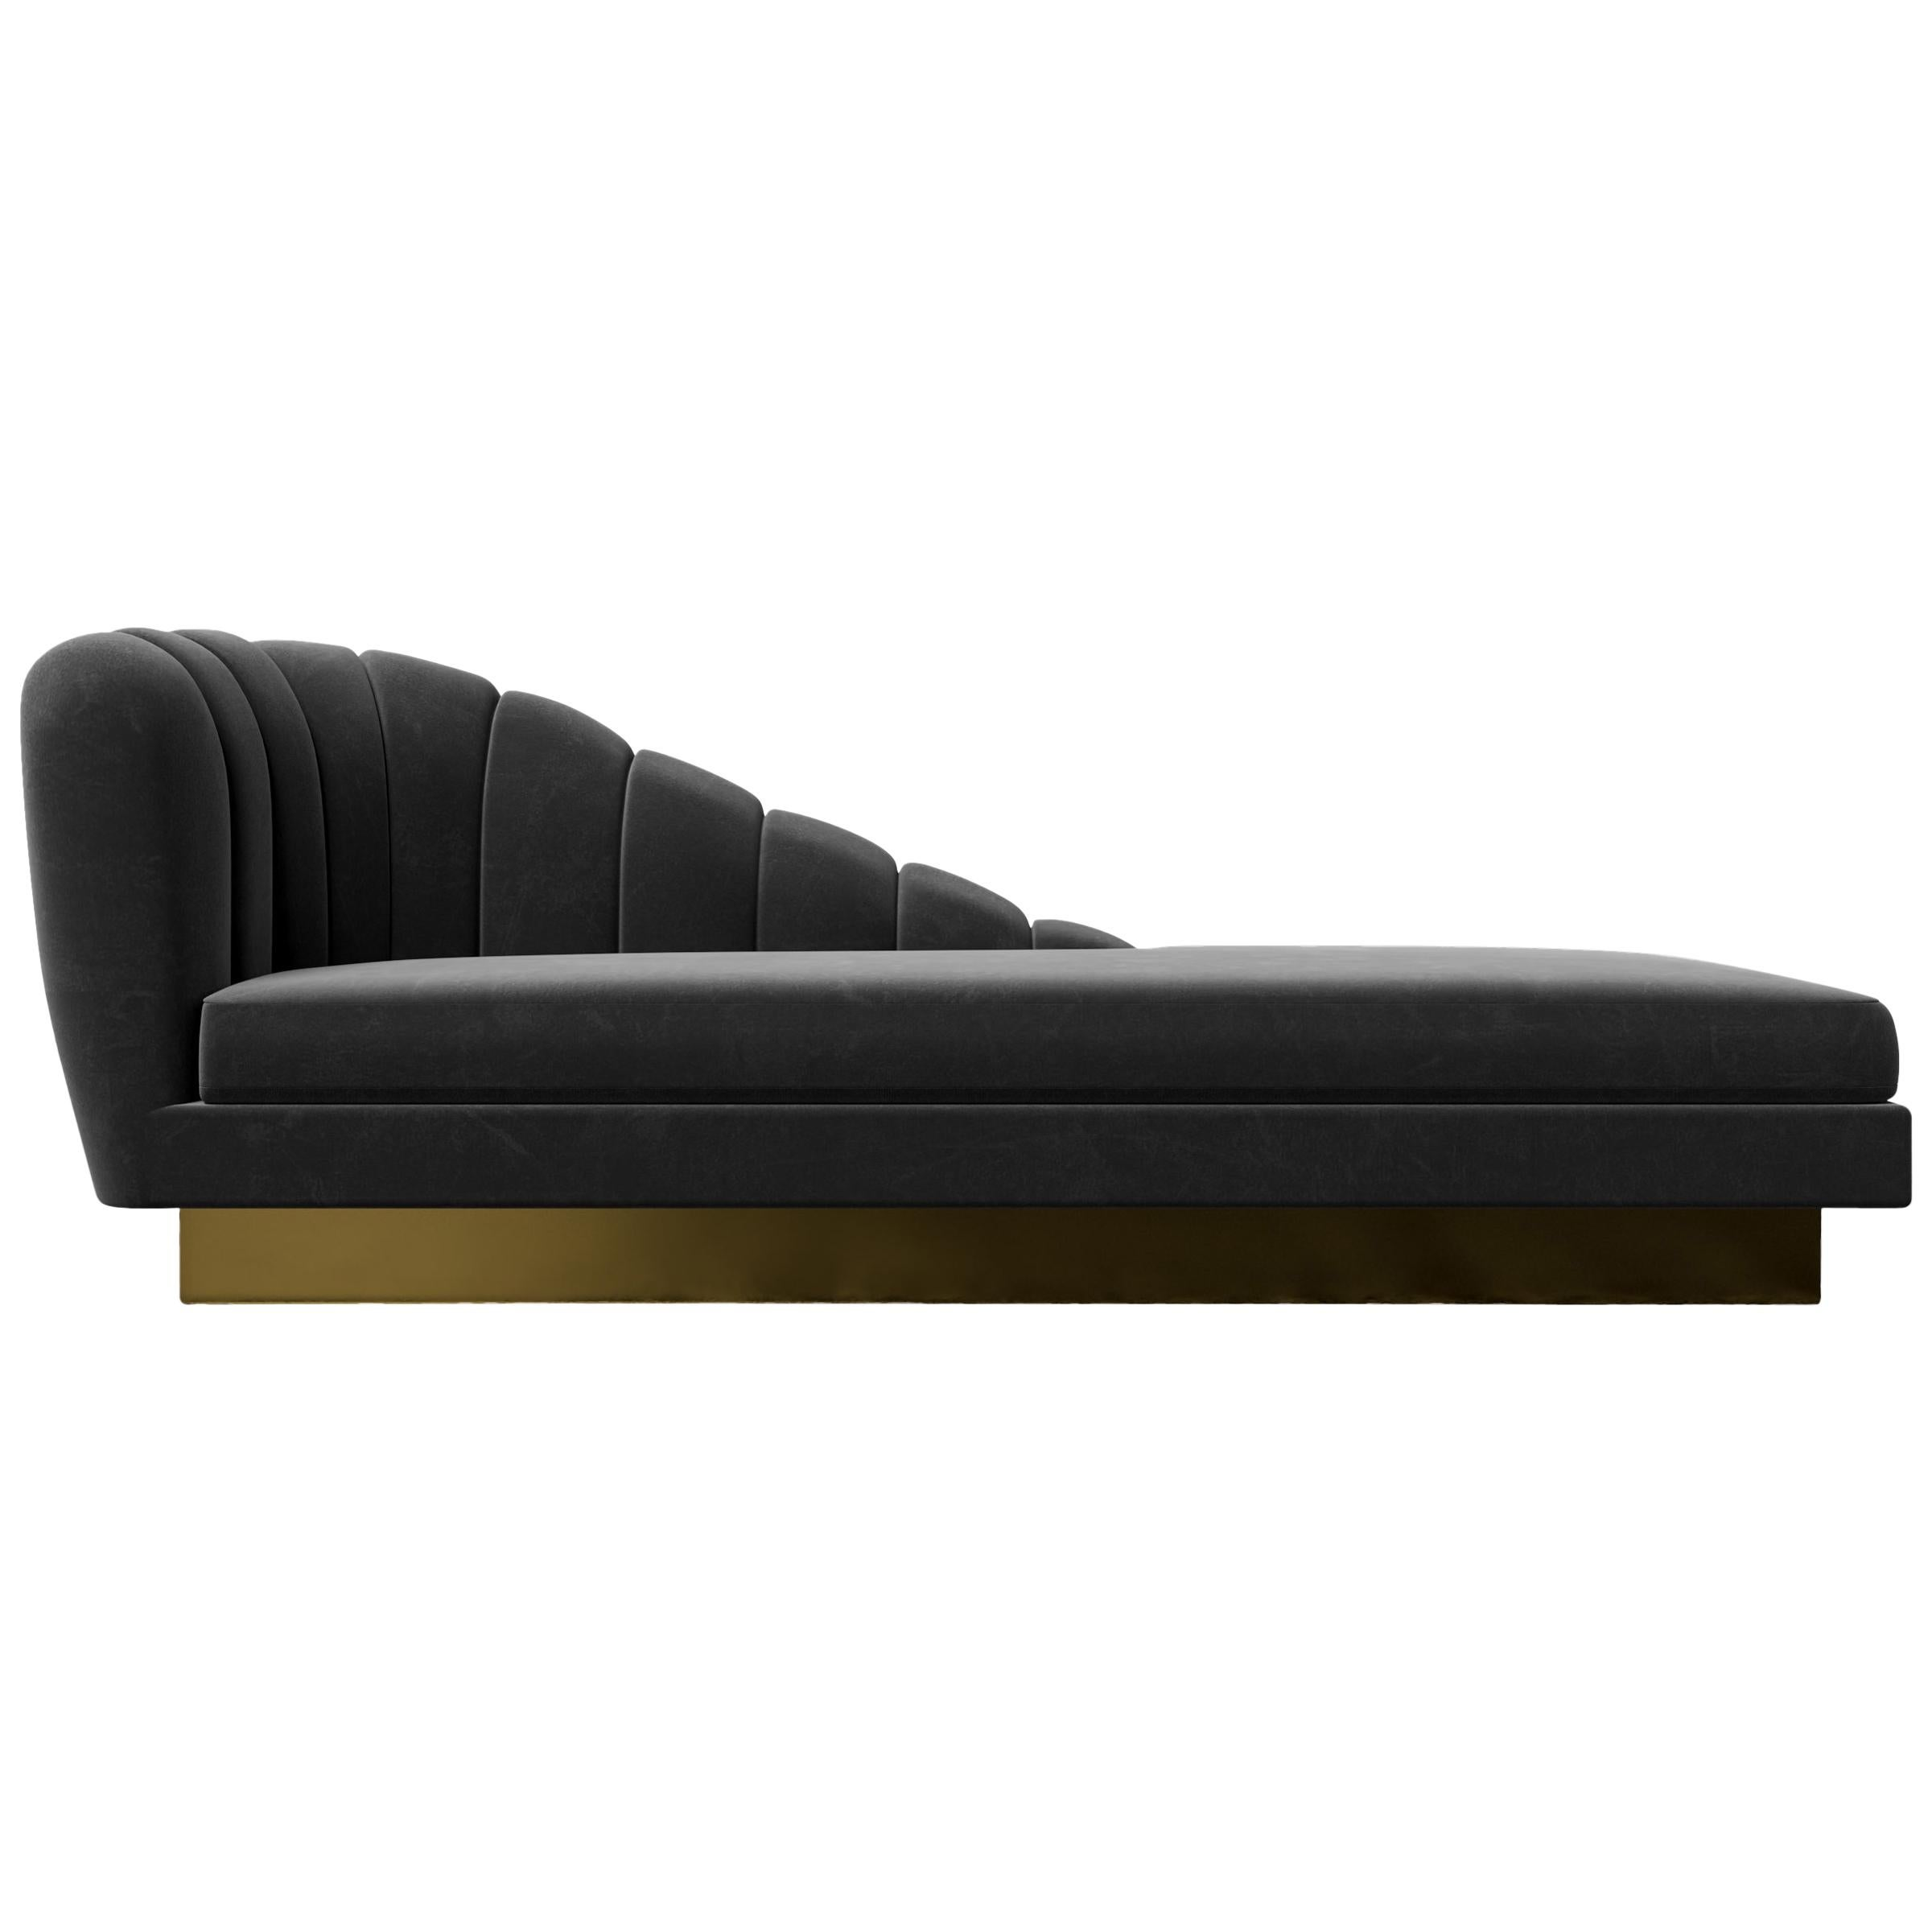 GUINEVERE CHAISE - Modern Asymmetrical Velvet Chaise with Metal Plinth Base